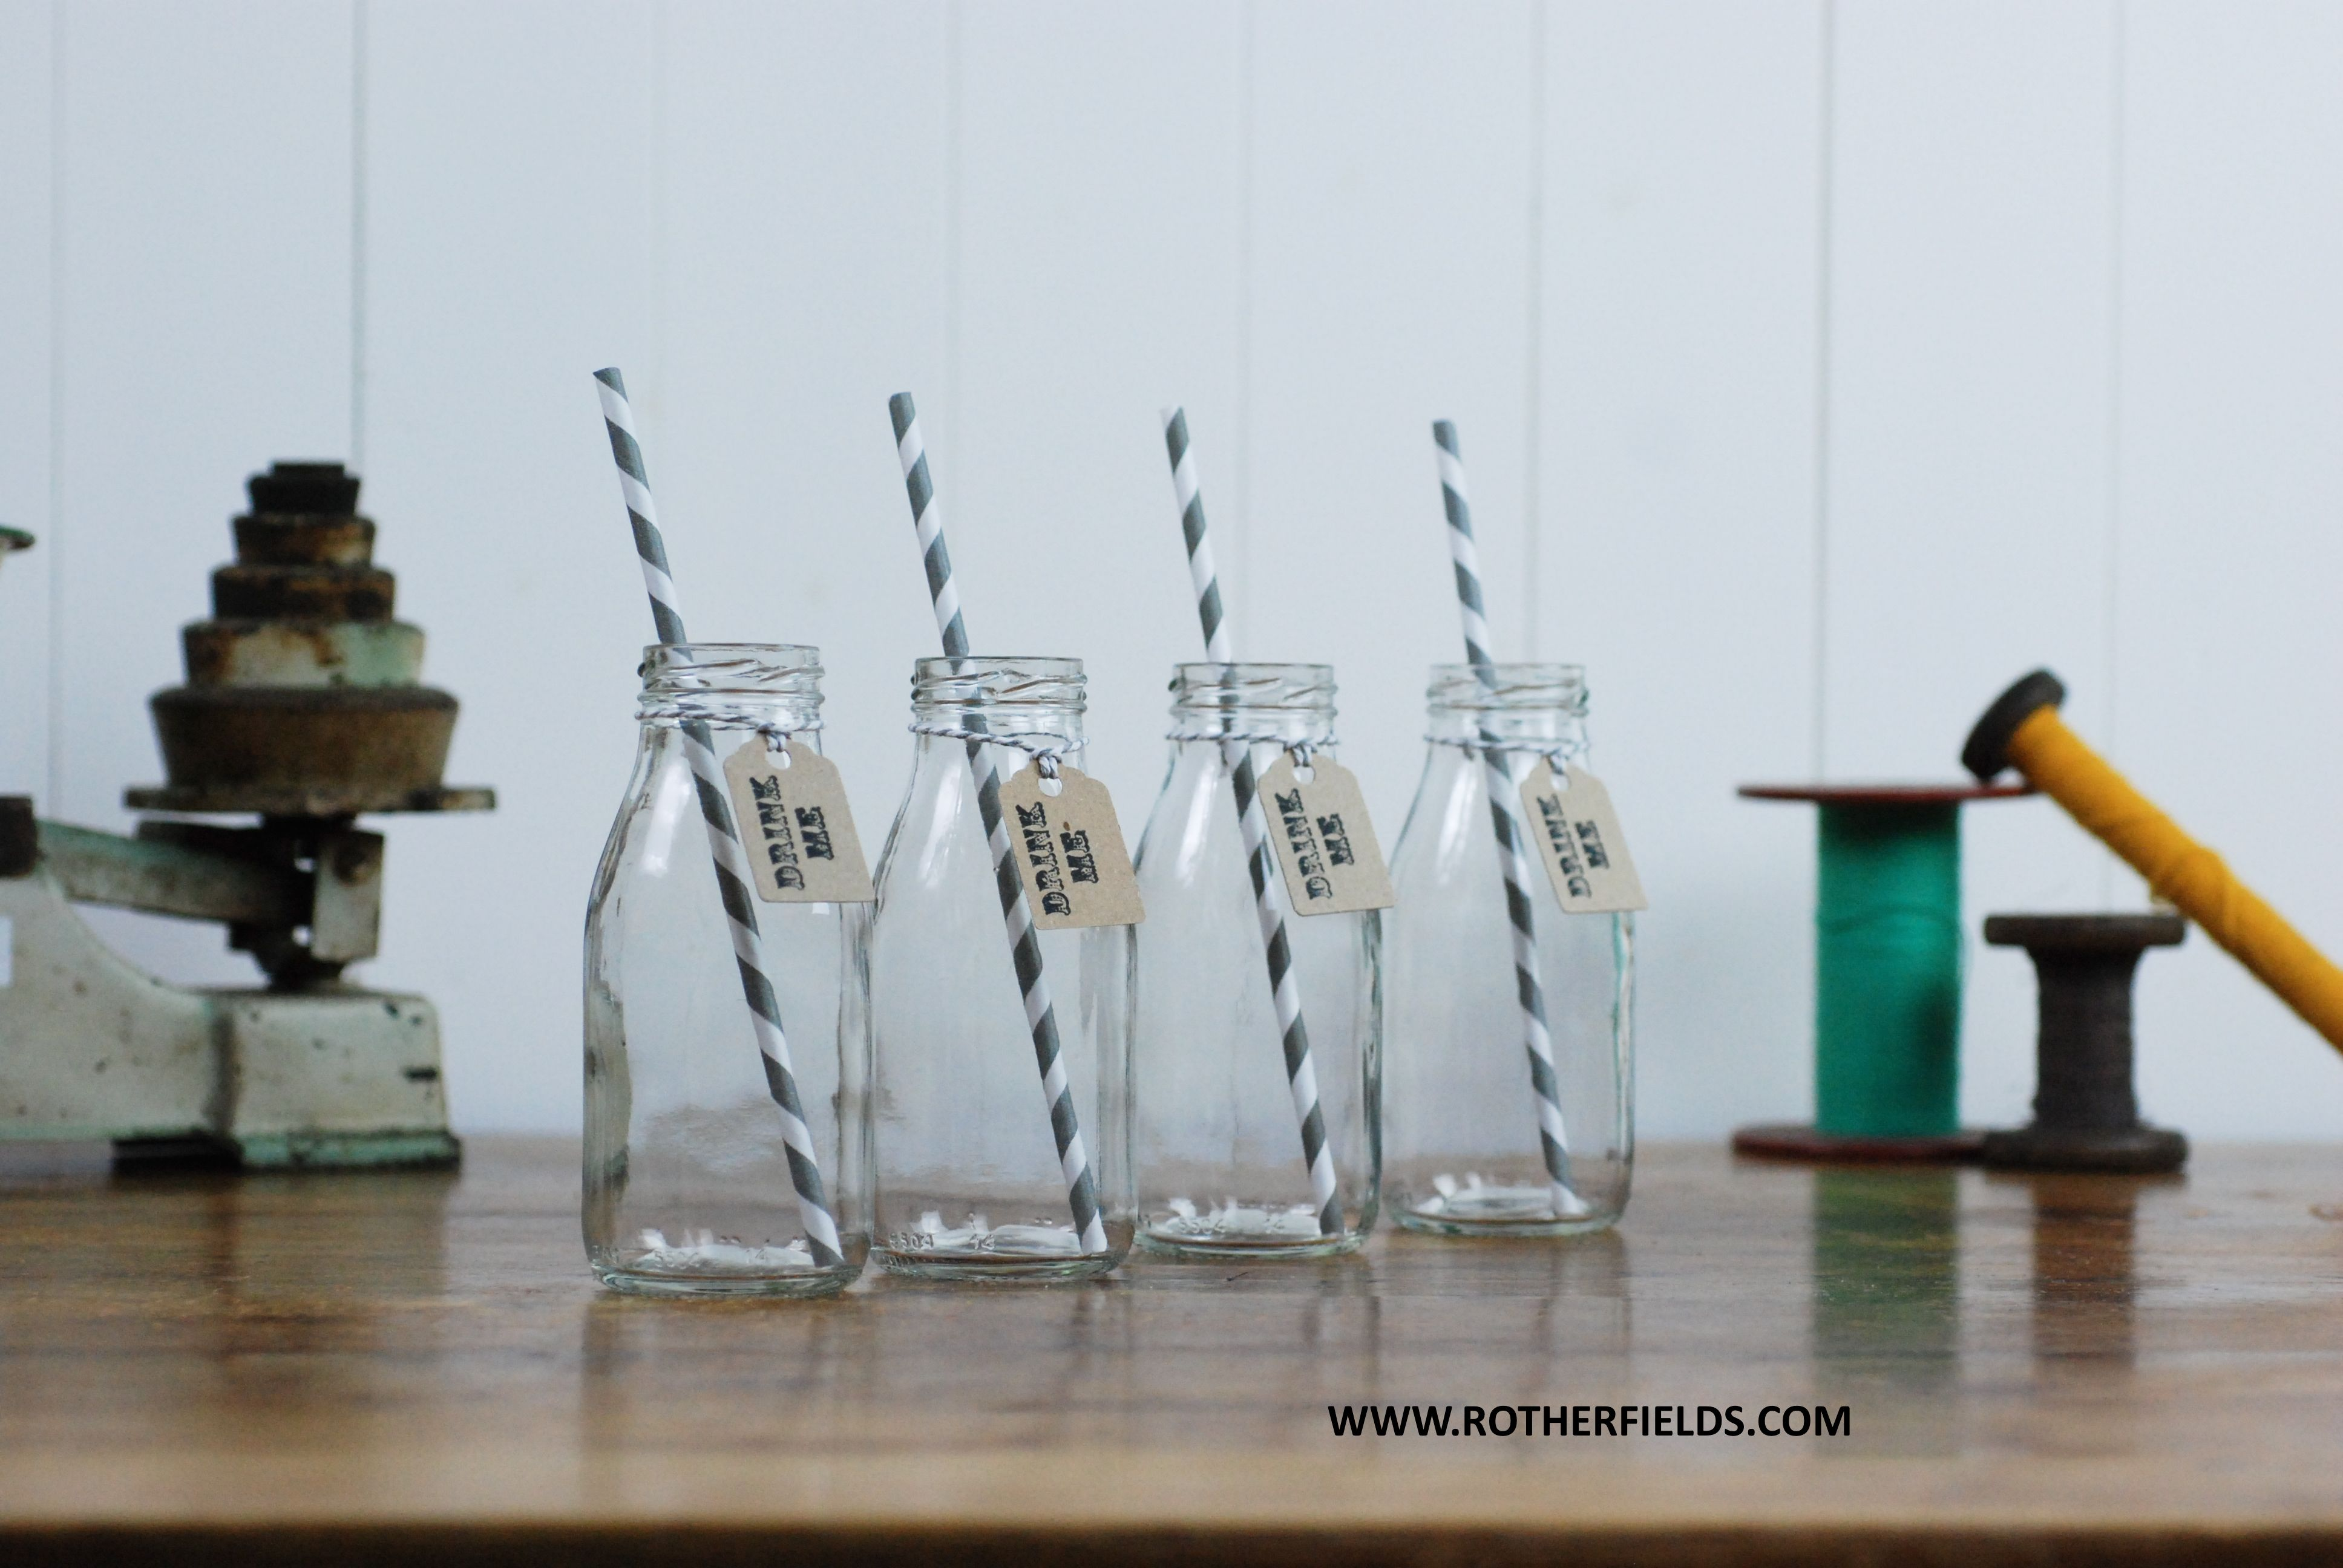 Mini milk bottles including paper straws & tags - perfect for weddings, parties & events. Great for vintage / retro style Cocktails!  Purchase set of 4 from WWW.ROTHERFIELDS.COM for £9.99